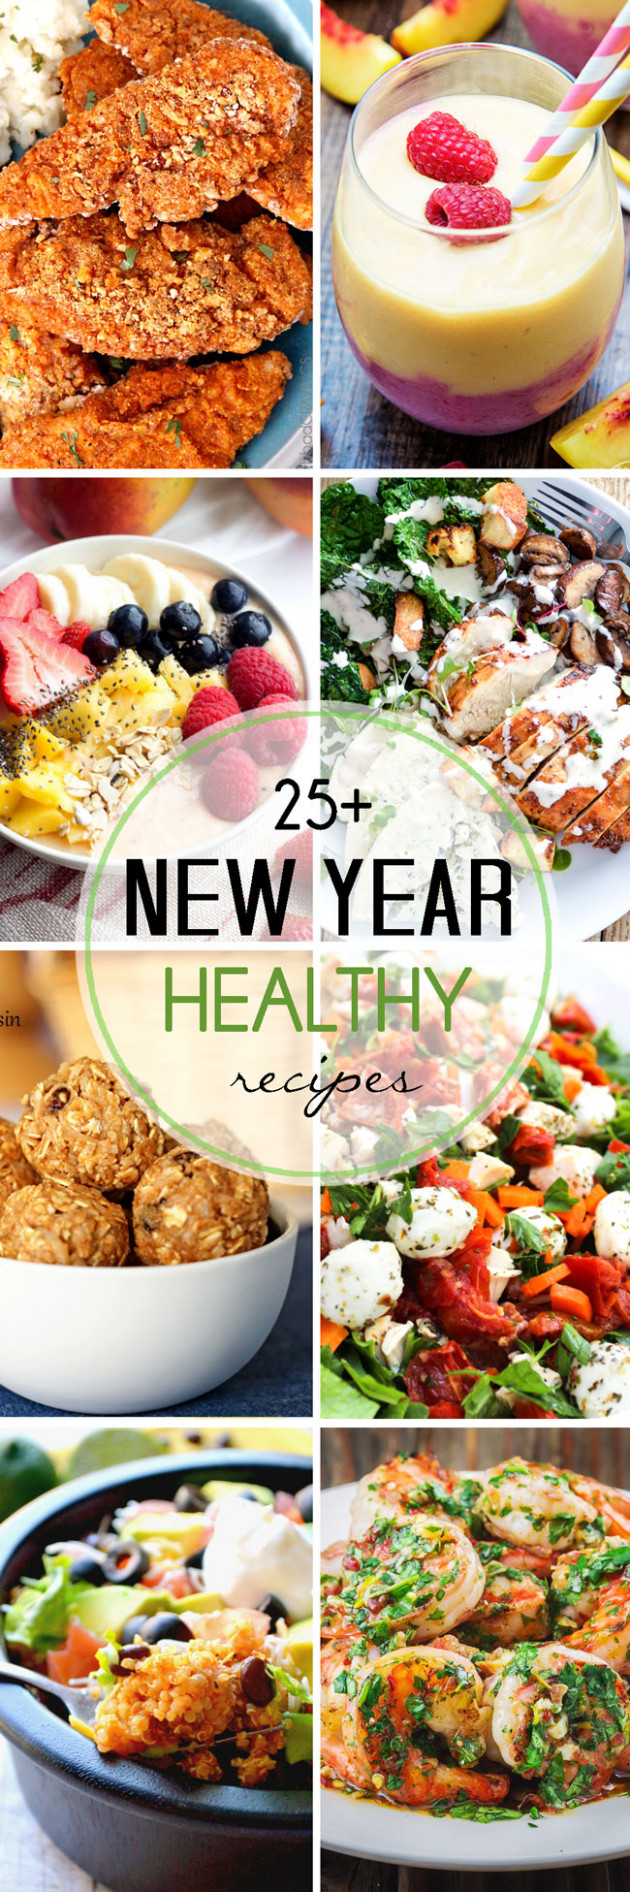 Healthy New Year Recipes - Lmldfood - Healthy Recipes Pinterest